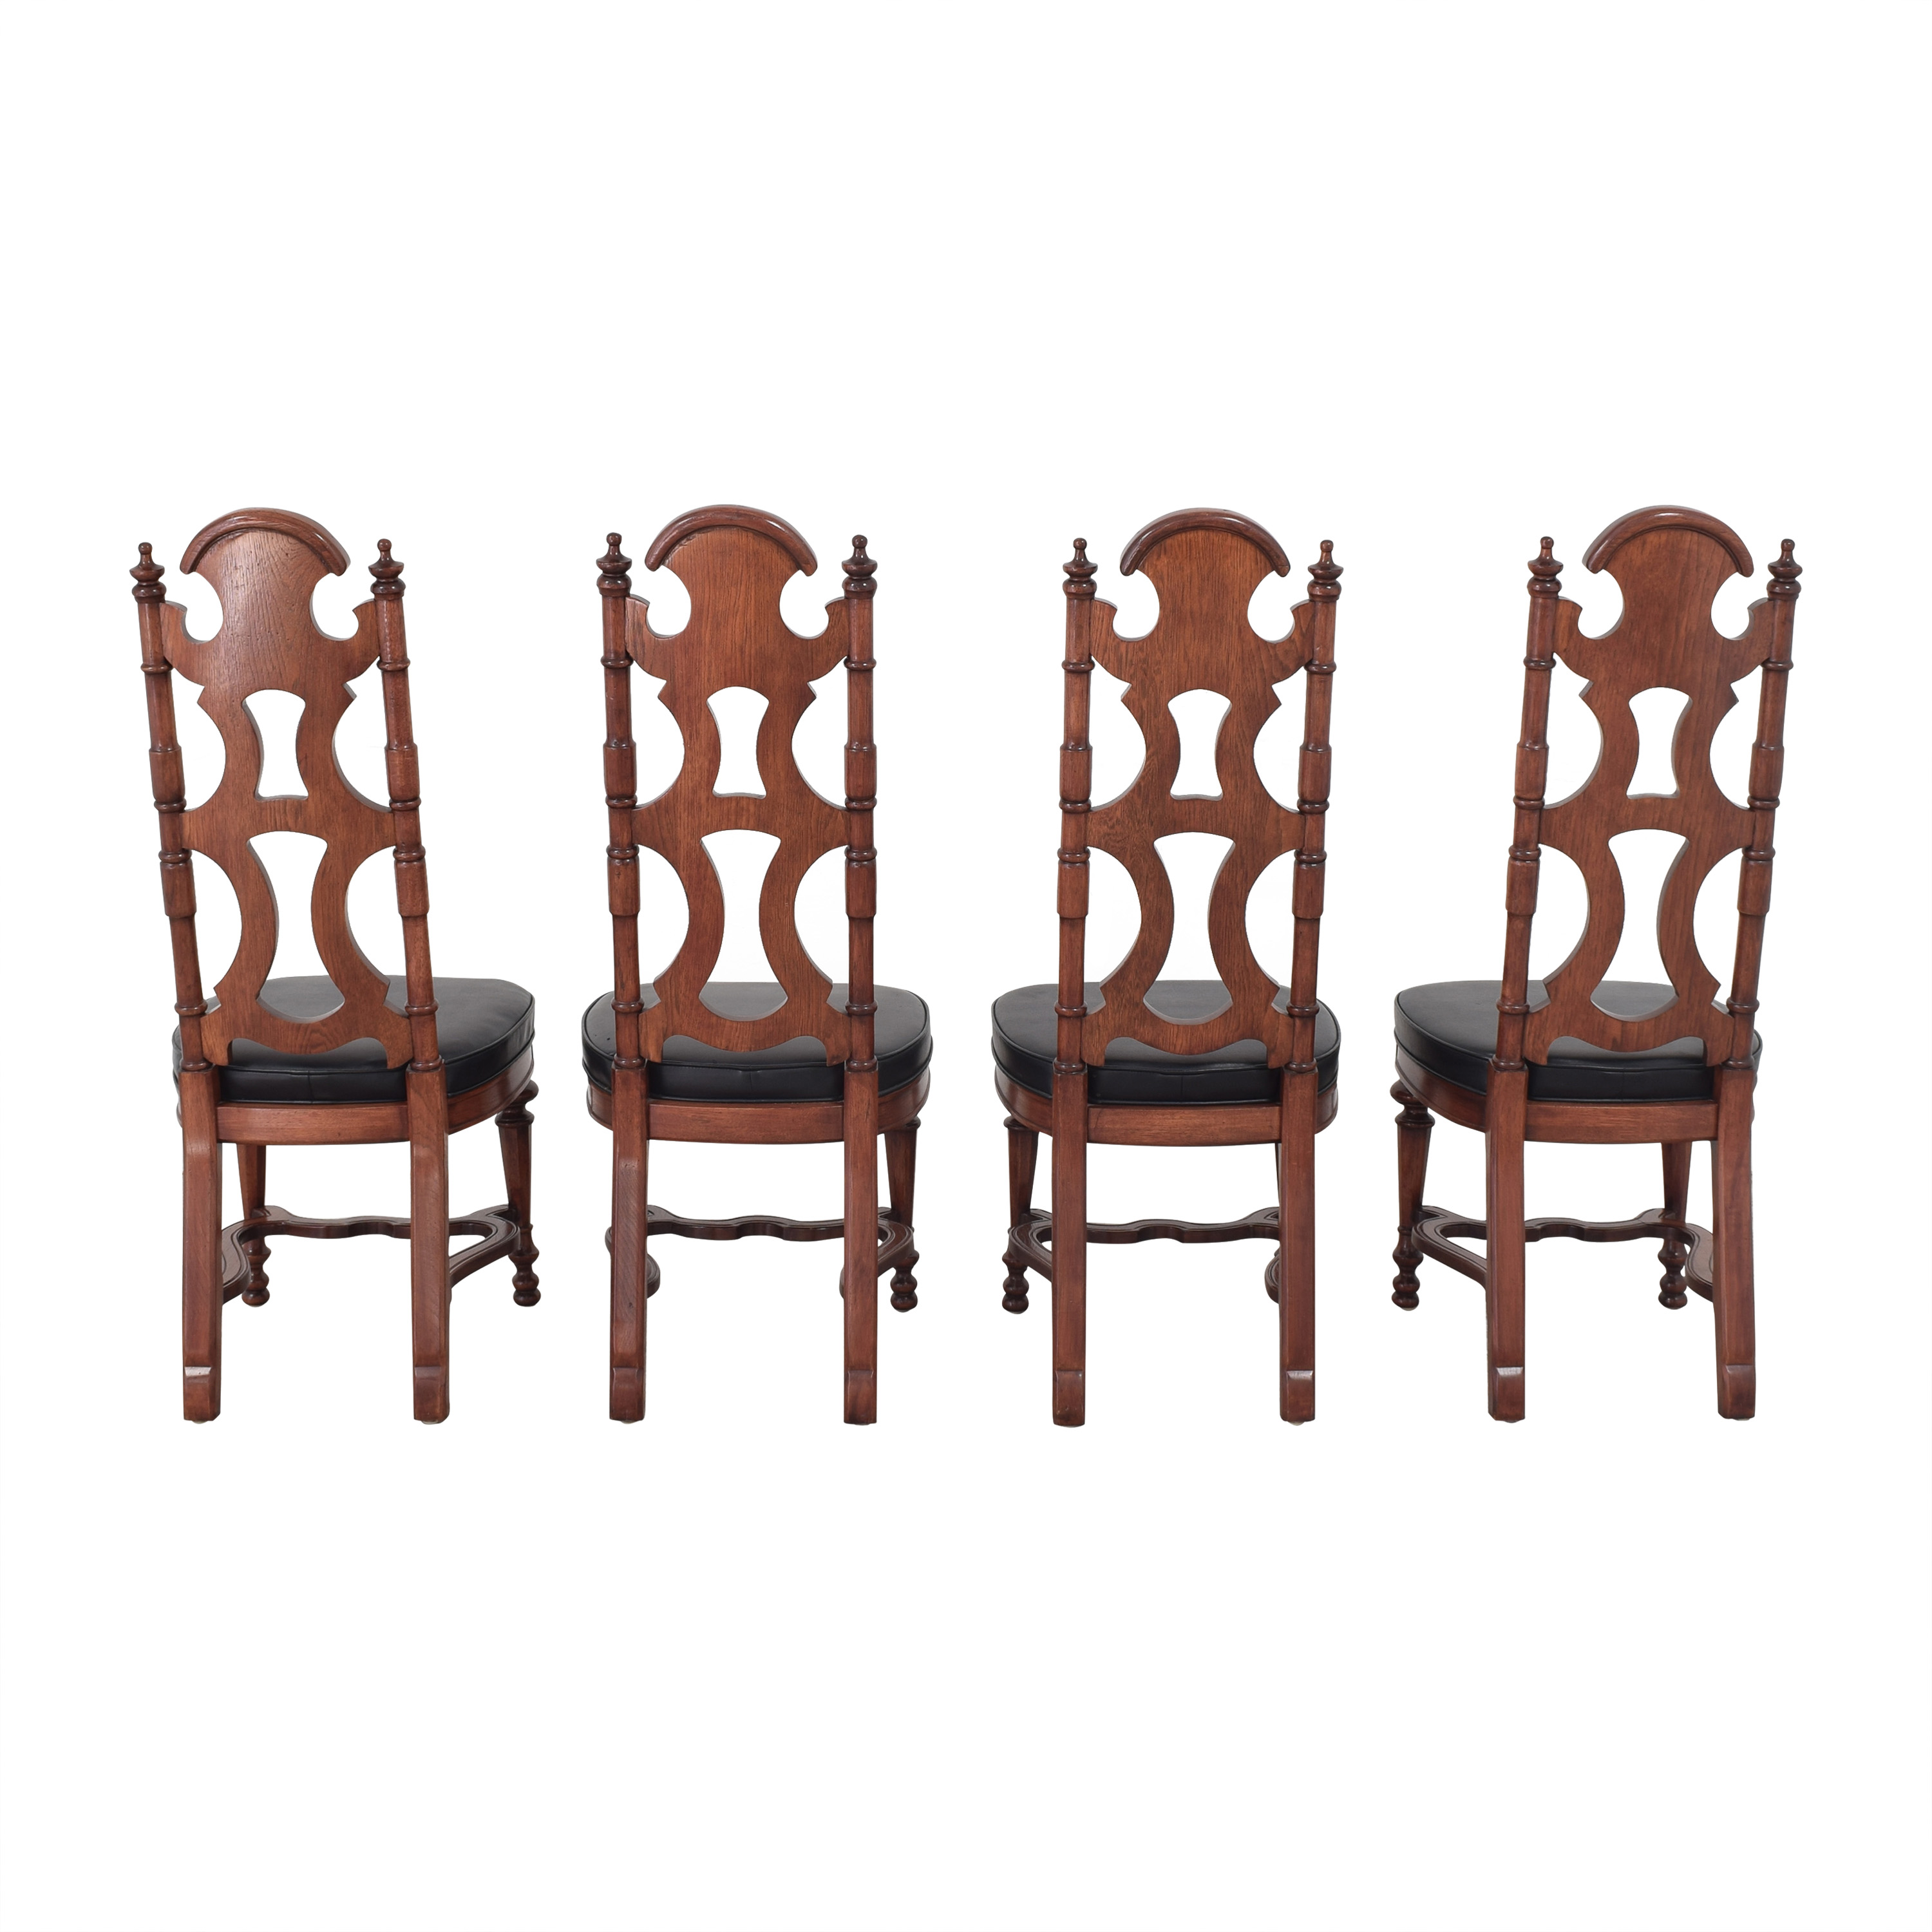 Drexel Drexel High Back Dining Chairs used